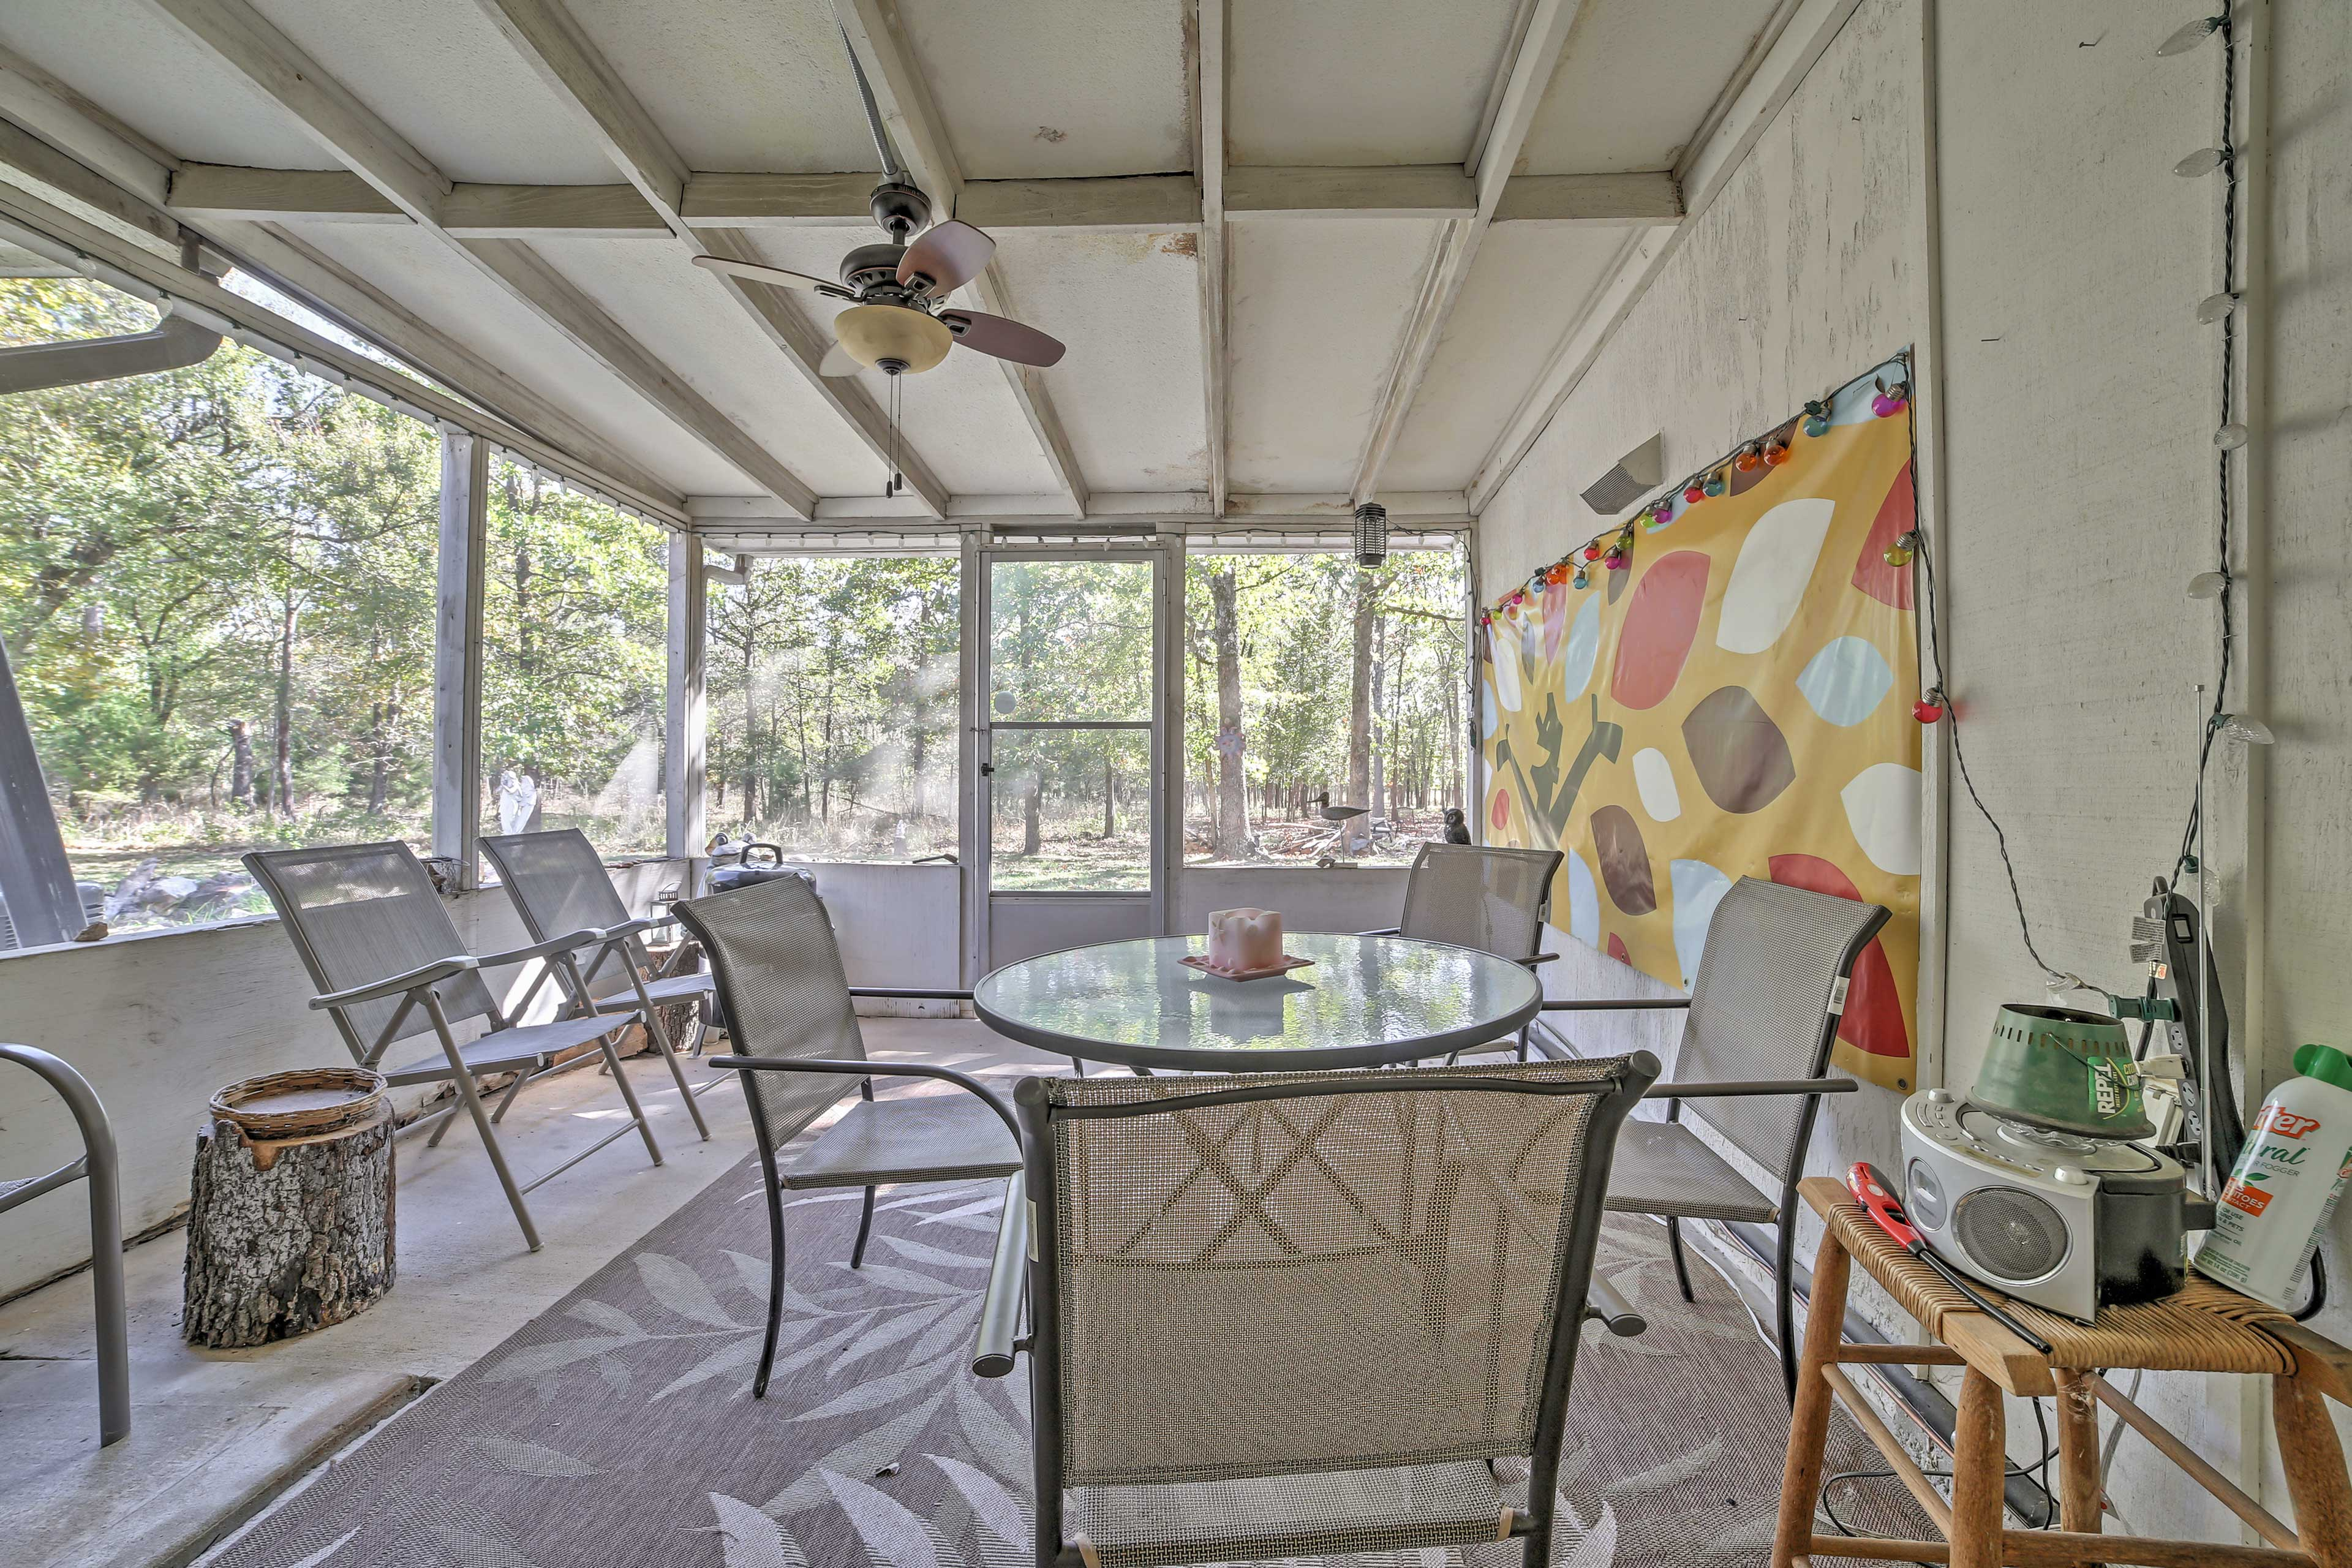 Gather together with your groups around the screened-in porch.